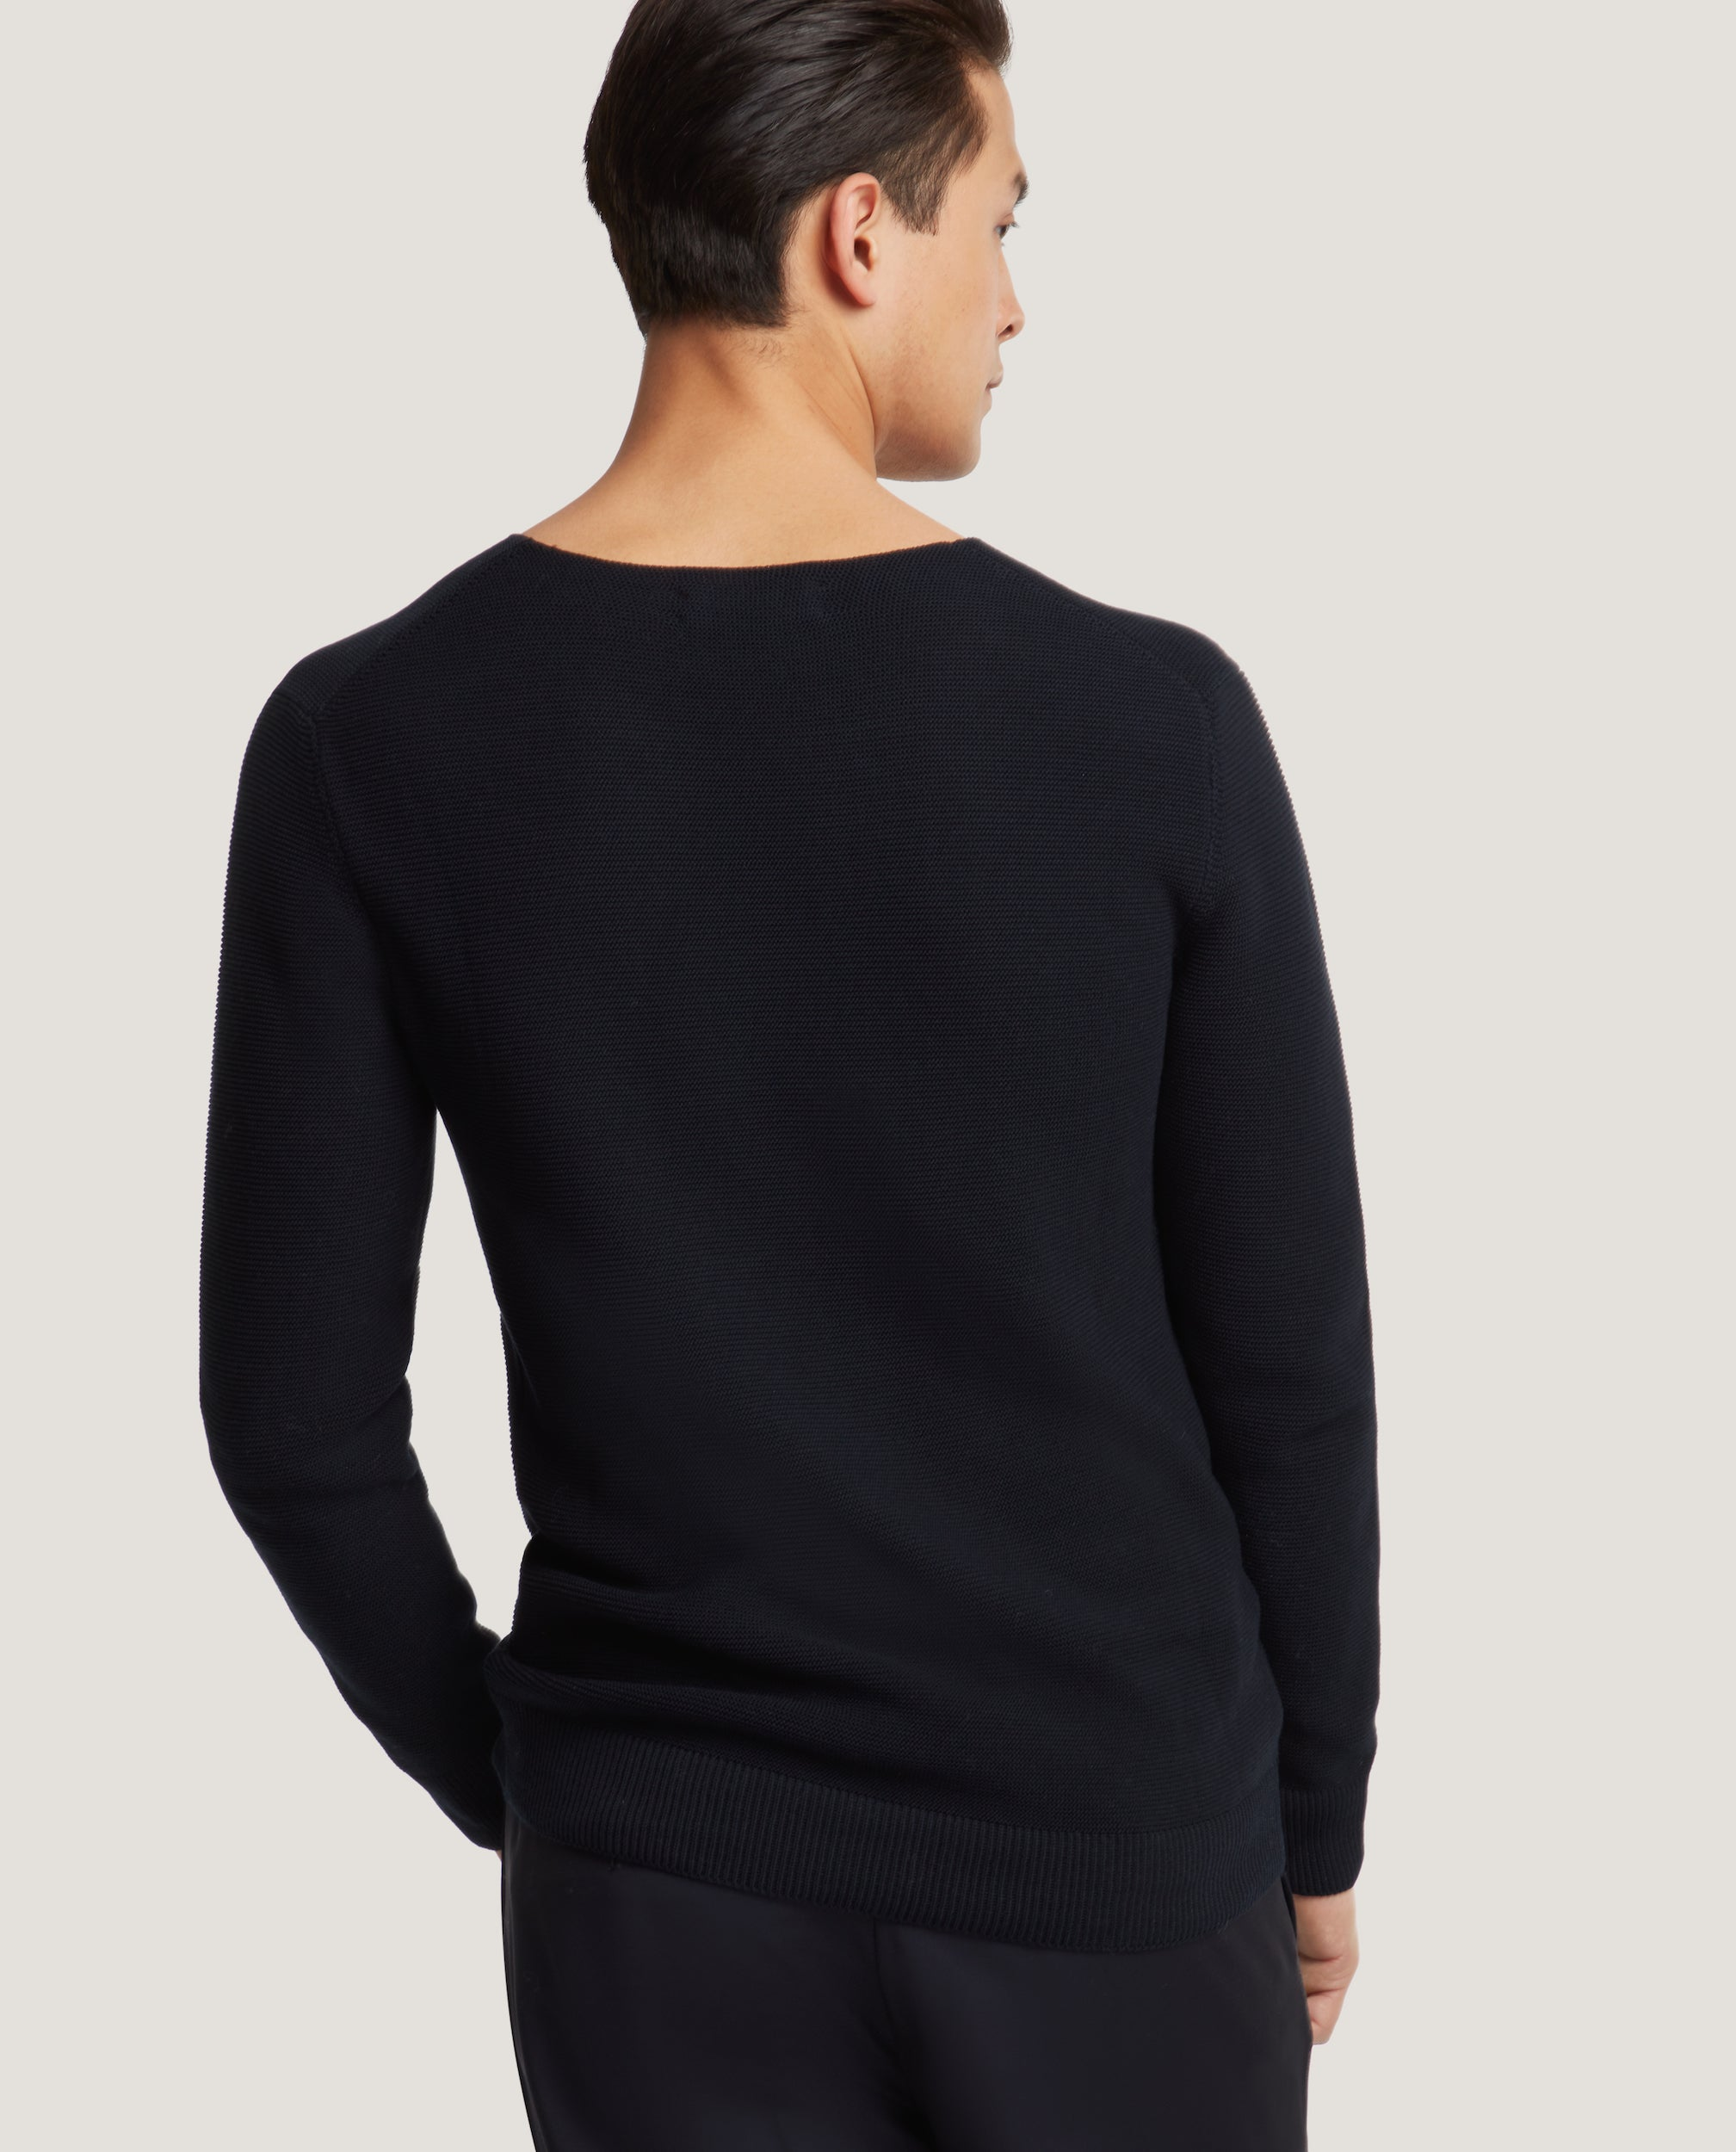 BENOIT Cotton knit sweater | Night Blue